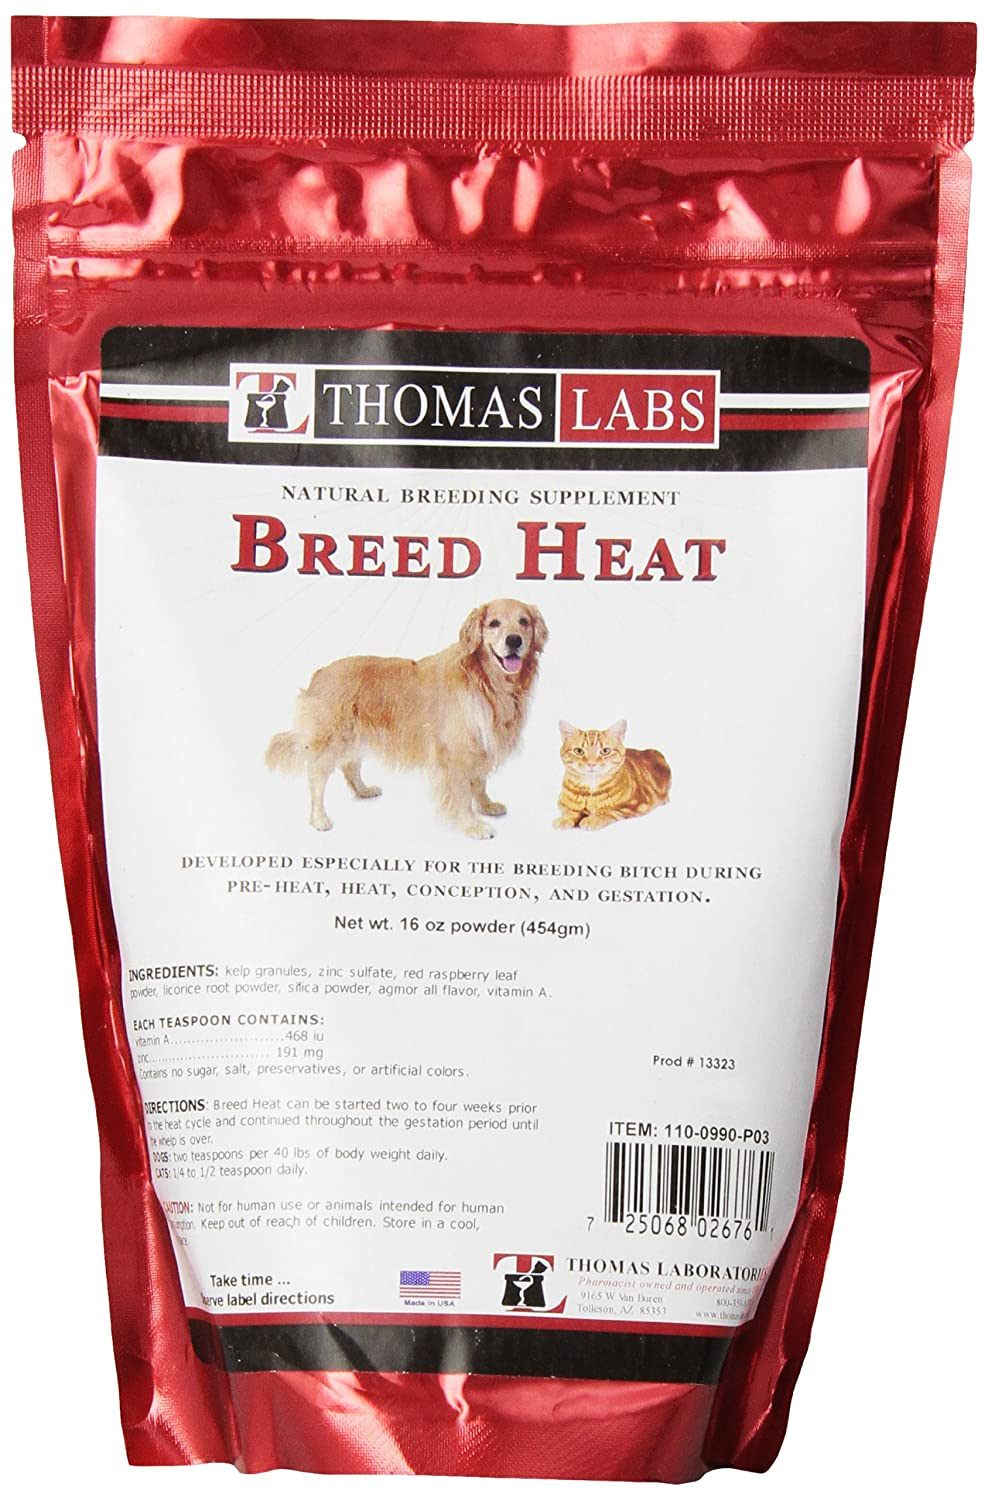 Breed Heat, 16 oz powder